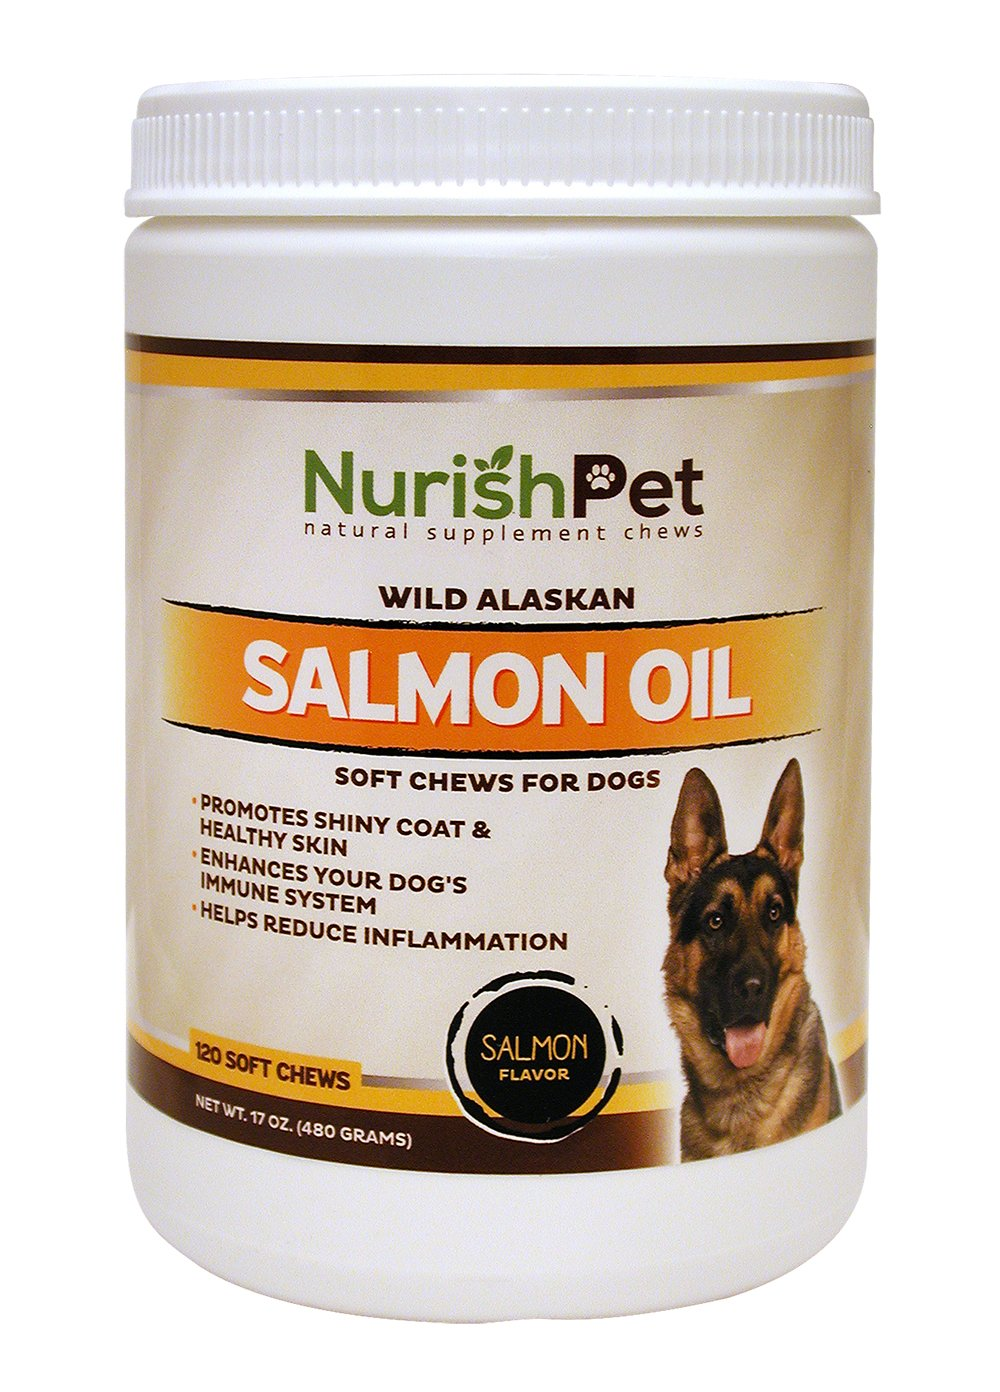 NurishPet – Wild Alaskan Salmon Oil for Dogs – All Natural Dog Treats and Thyroid Immunity Supplements for Improved Metabolism and Healthy Shiny Coat (120 Soft Dog Treats) free shipping